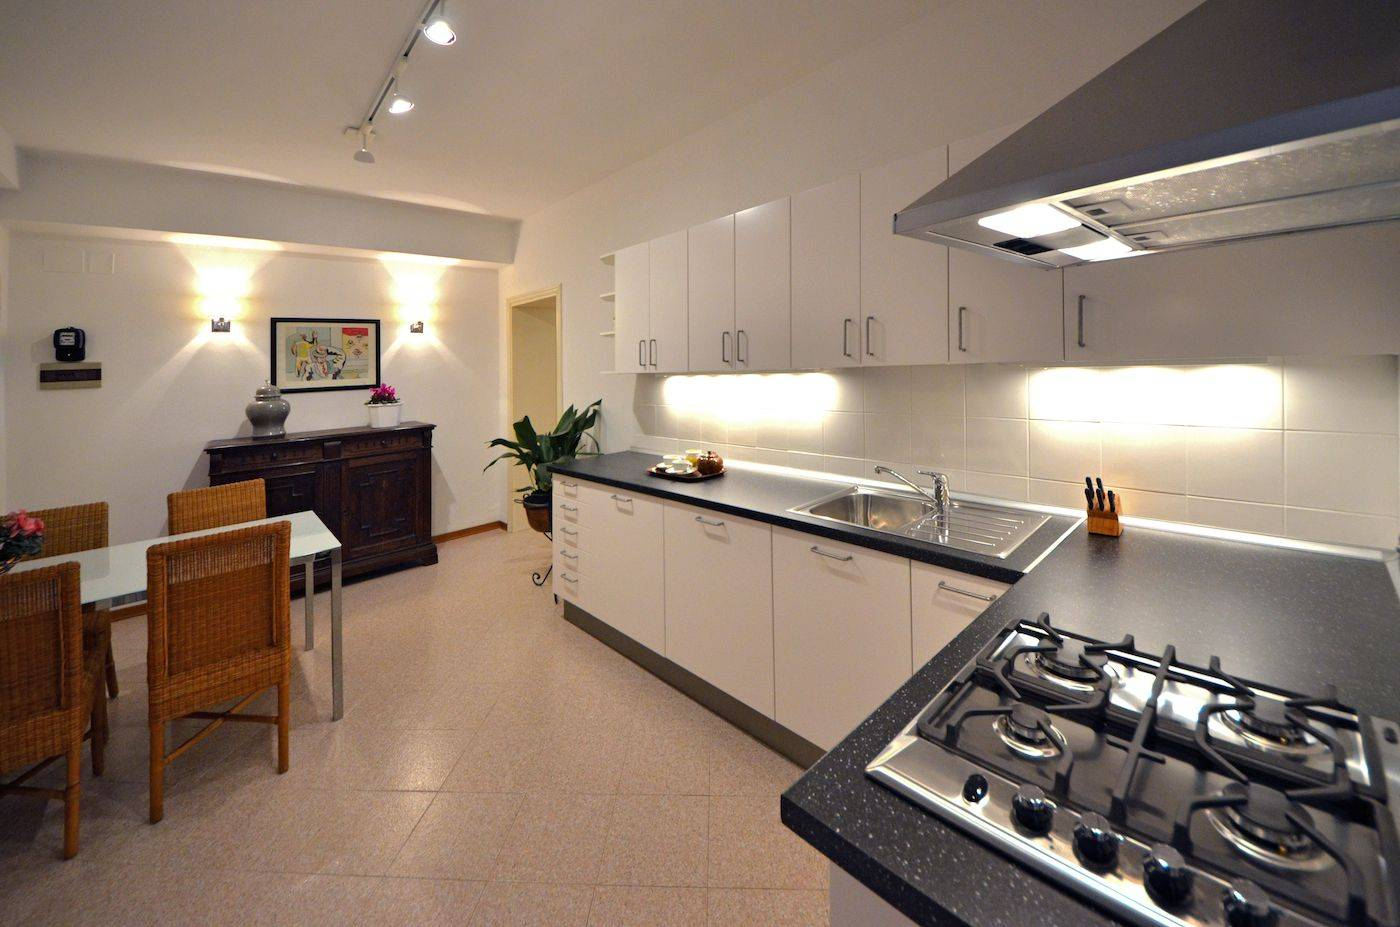 spacious kitchen with brand new appliances